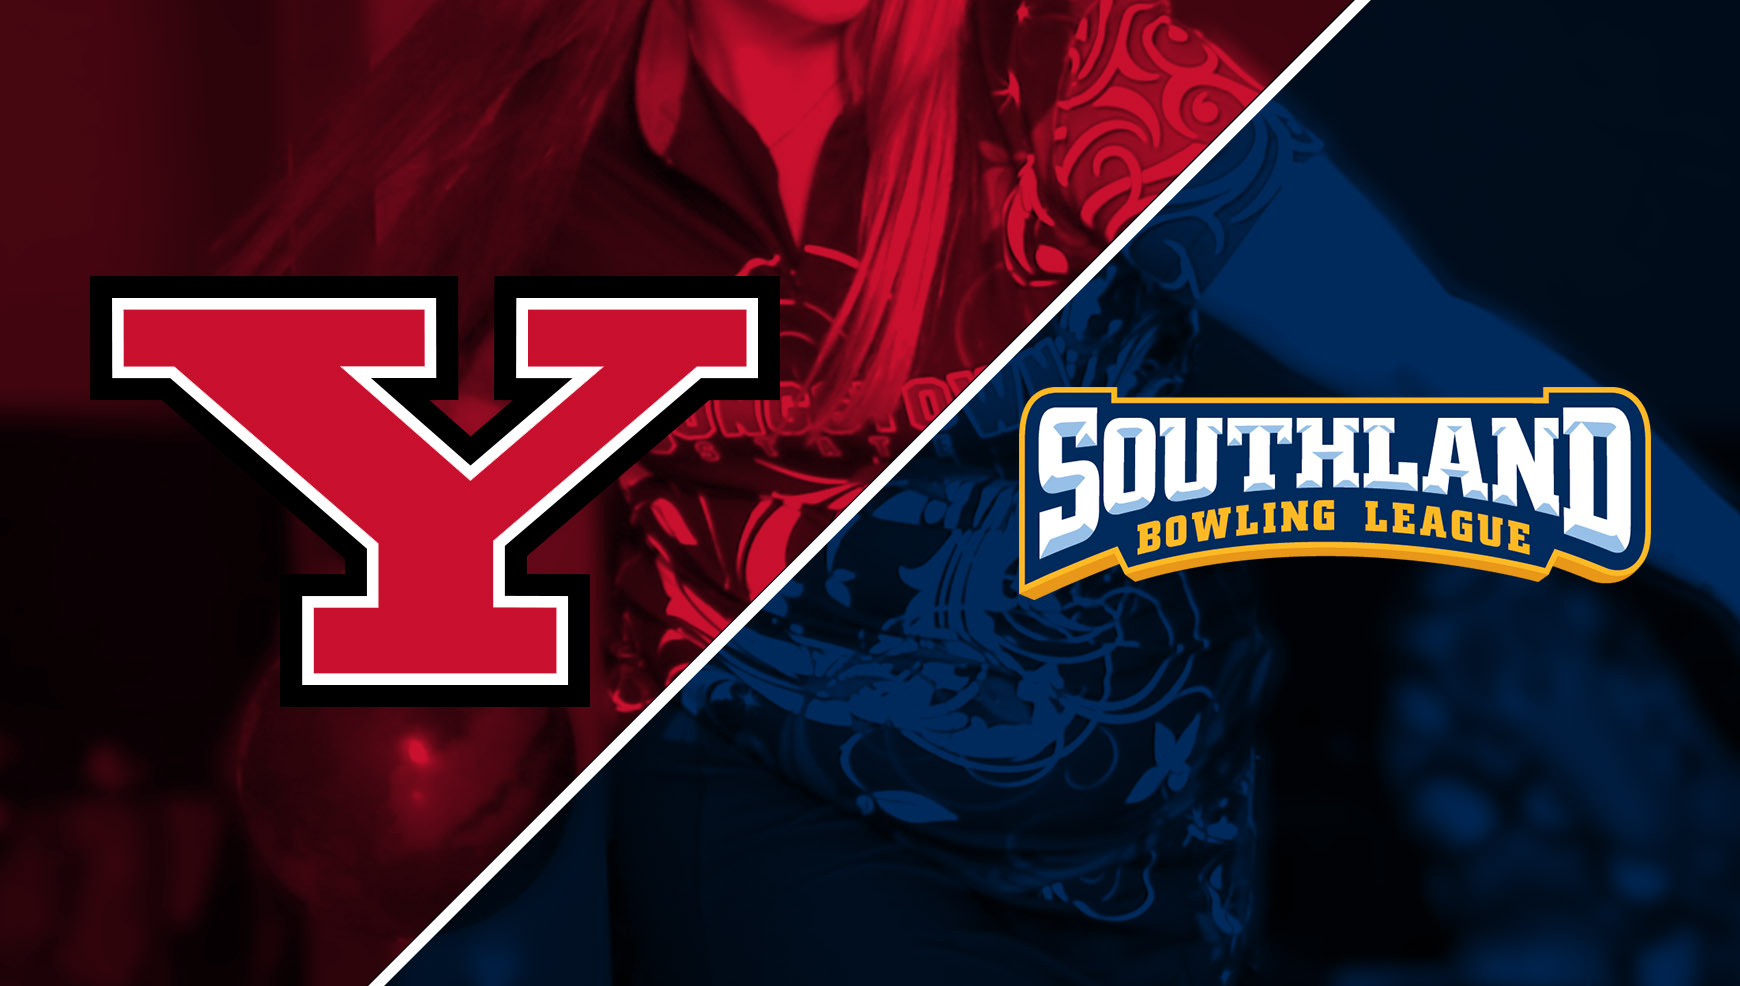 Youngstown State will join the Southland Bowling League beginning this Fall.